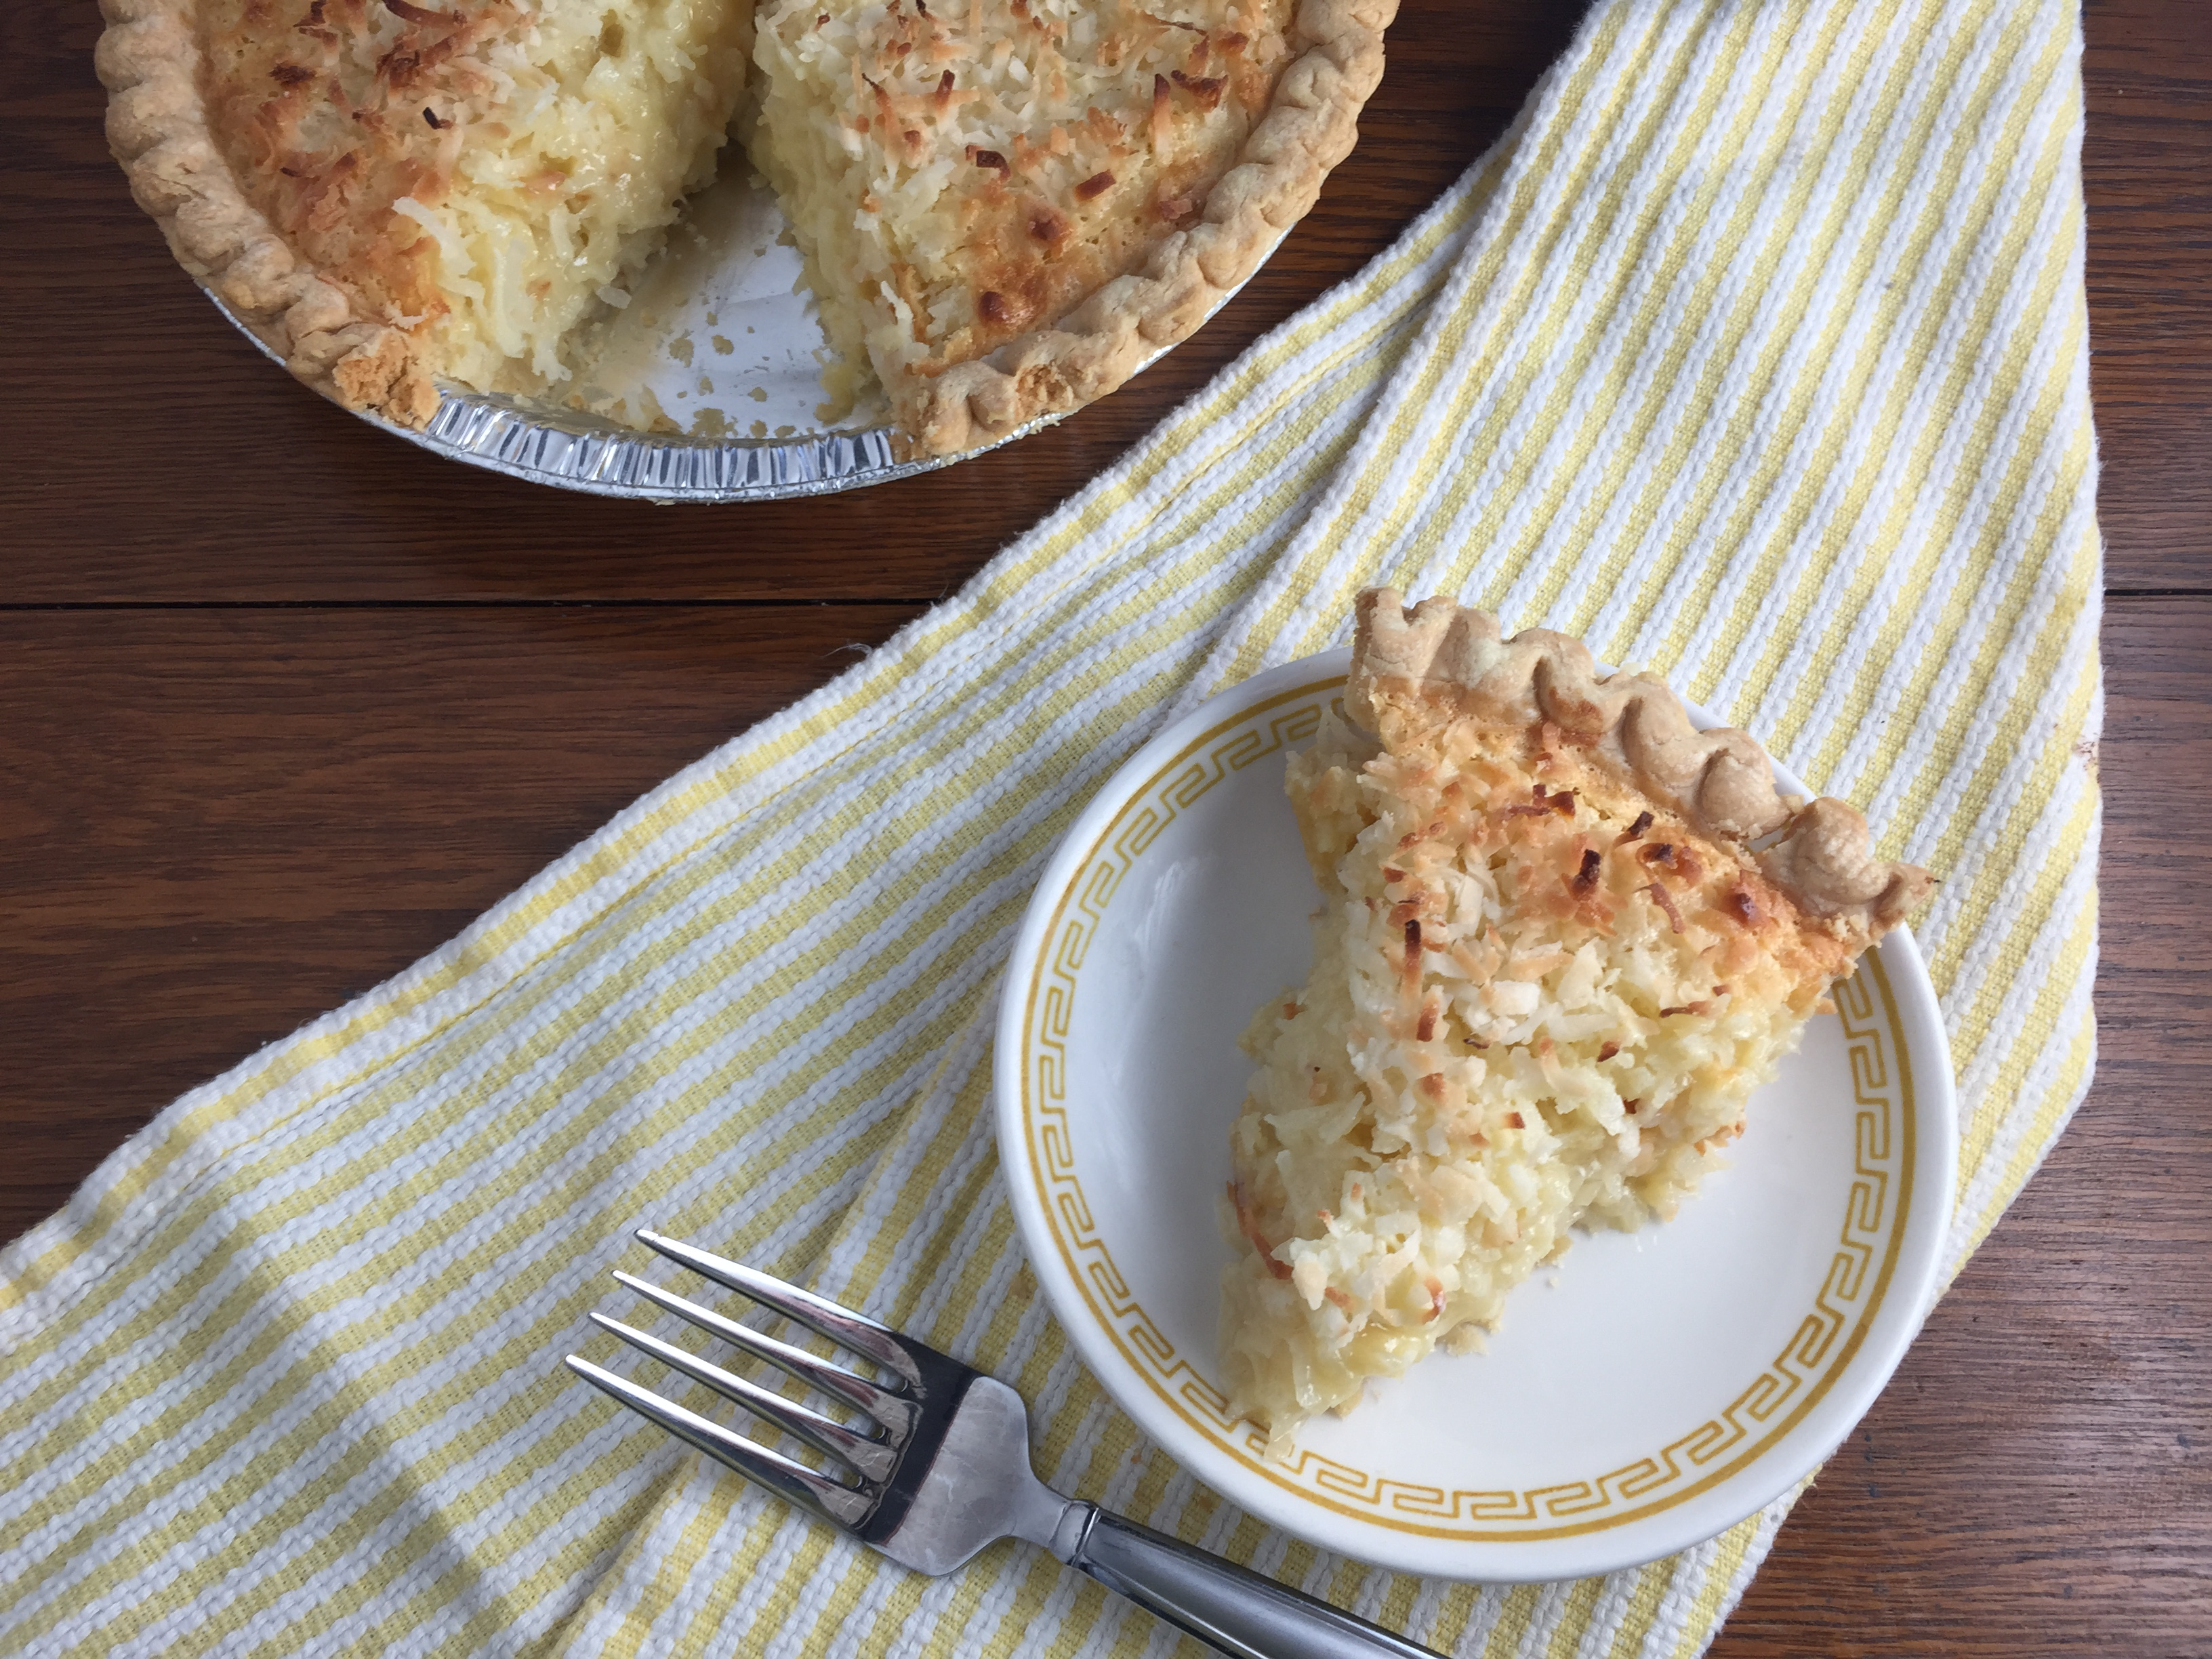 Coconut Macaroon Pie Cooking with Vinyl